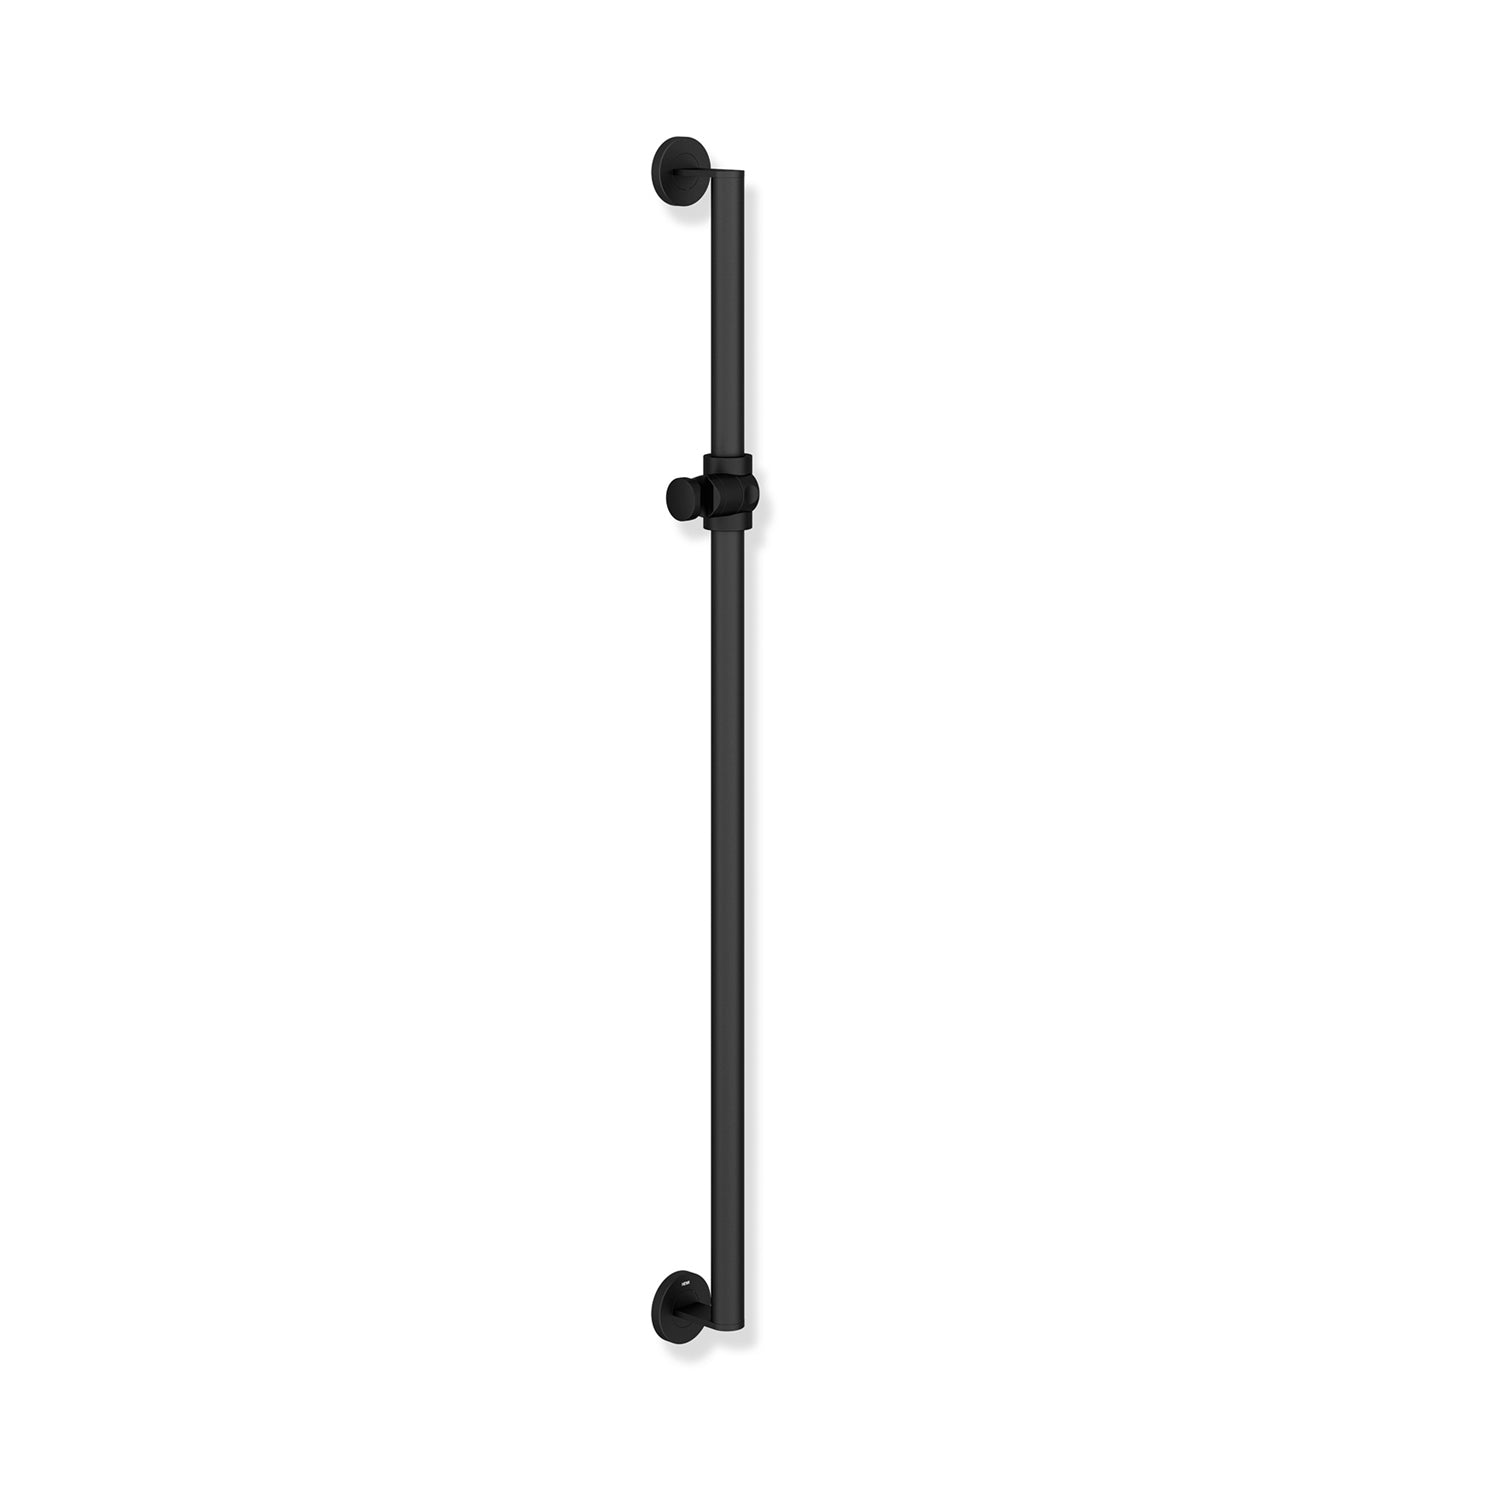 900mm Freestyle Supportive Shower Rail with a matt black finish on a white background